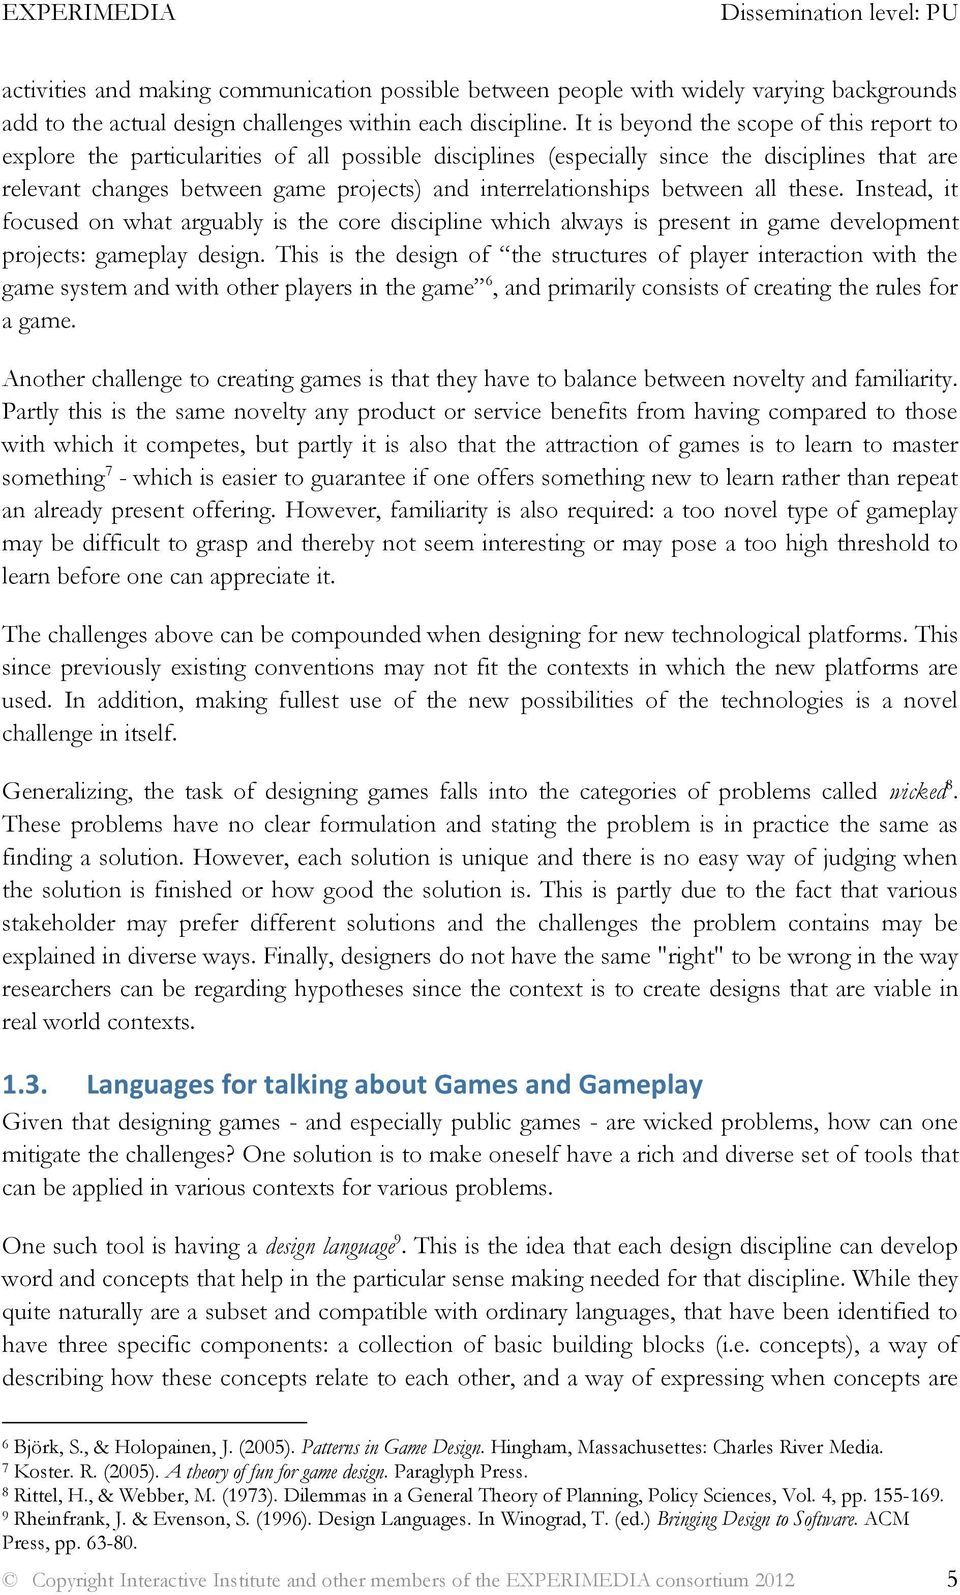 interrelationships between all these. Instead, it focused on what arguably is the core discipline which always is present in game development projects: gameplay design.